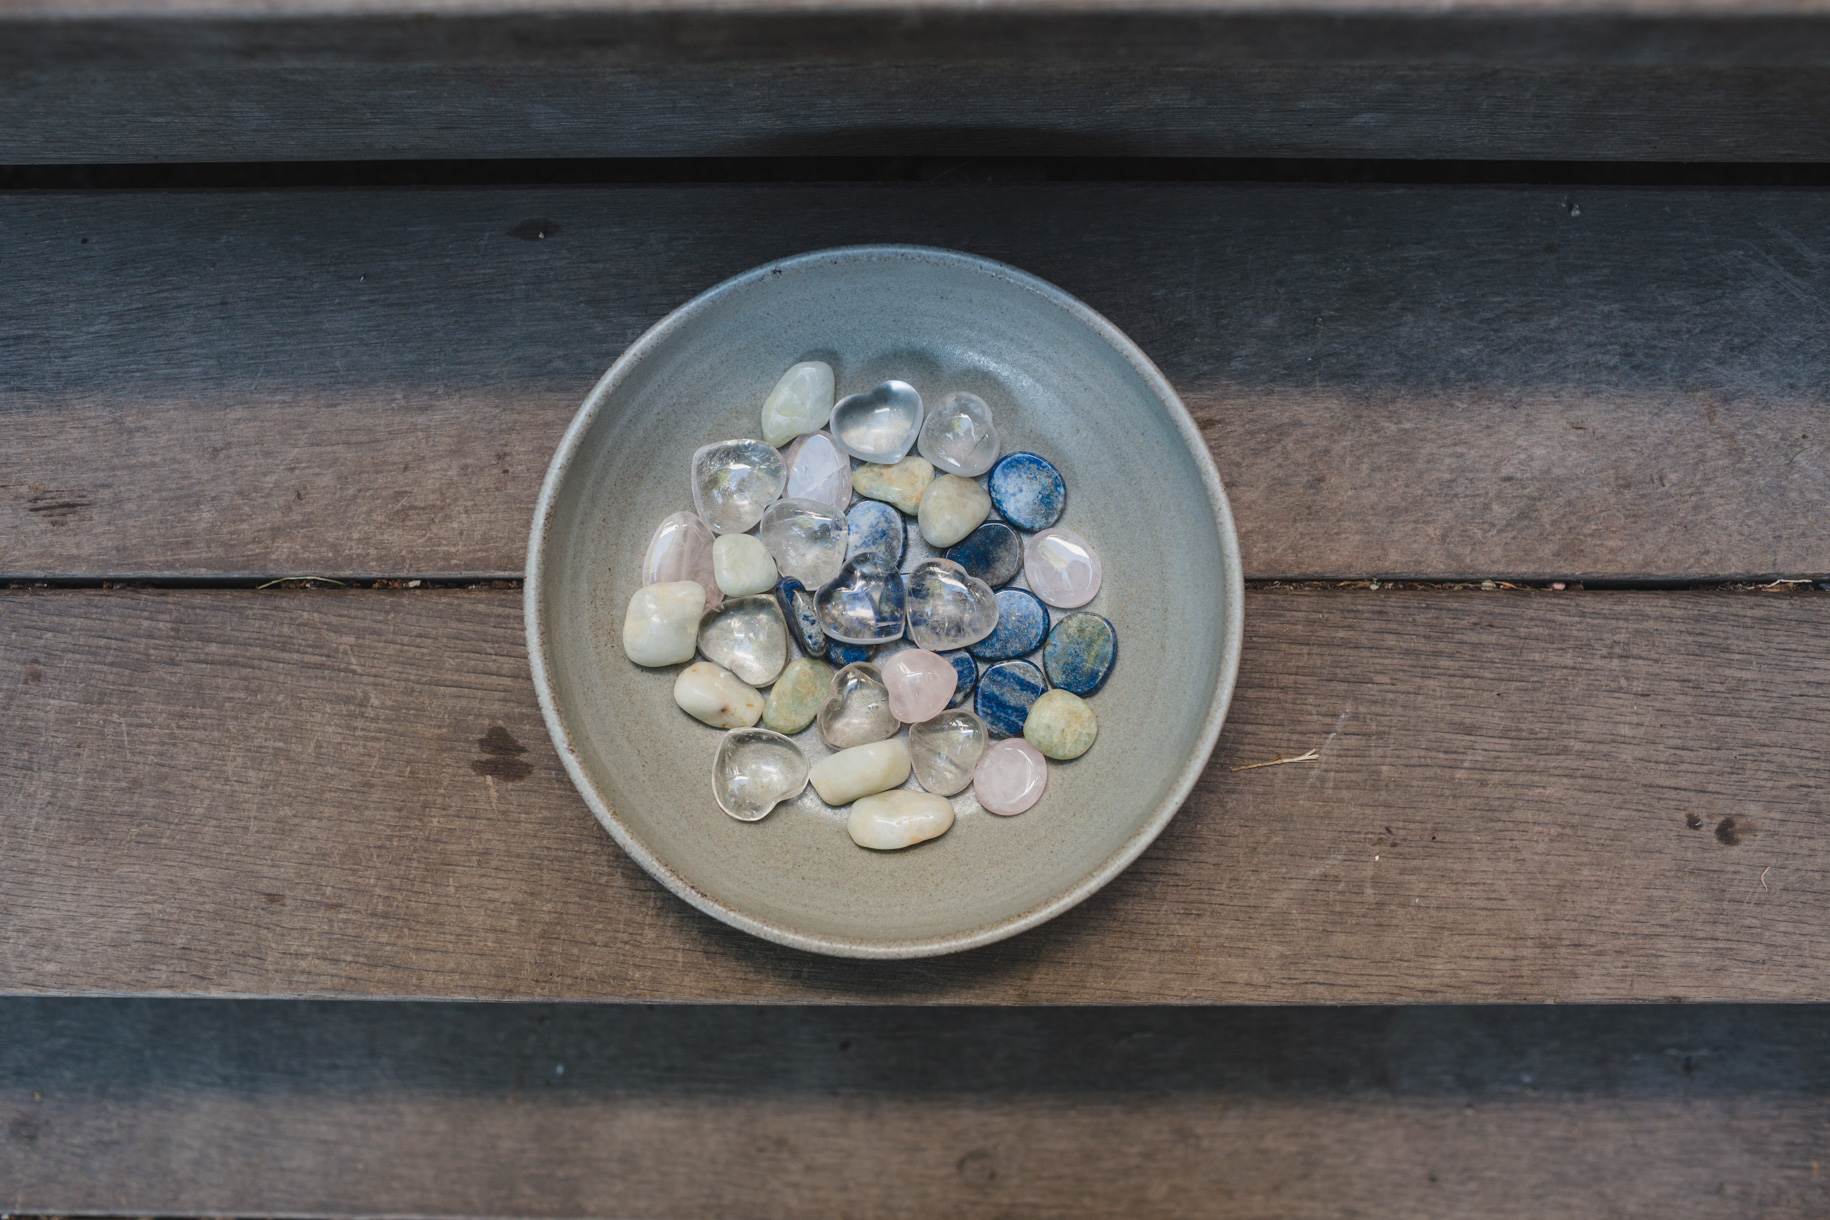 These stones were to be passed around at the ceremony. Each stone to be held by guests and filled with an intention for the couple. At the end of the ceremony, they would be collected and given back to the couple for them to put in their home as a reminder of the loving energy given to them that day.